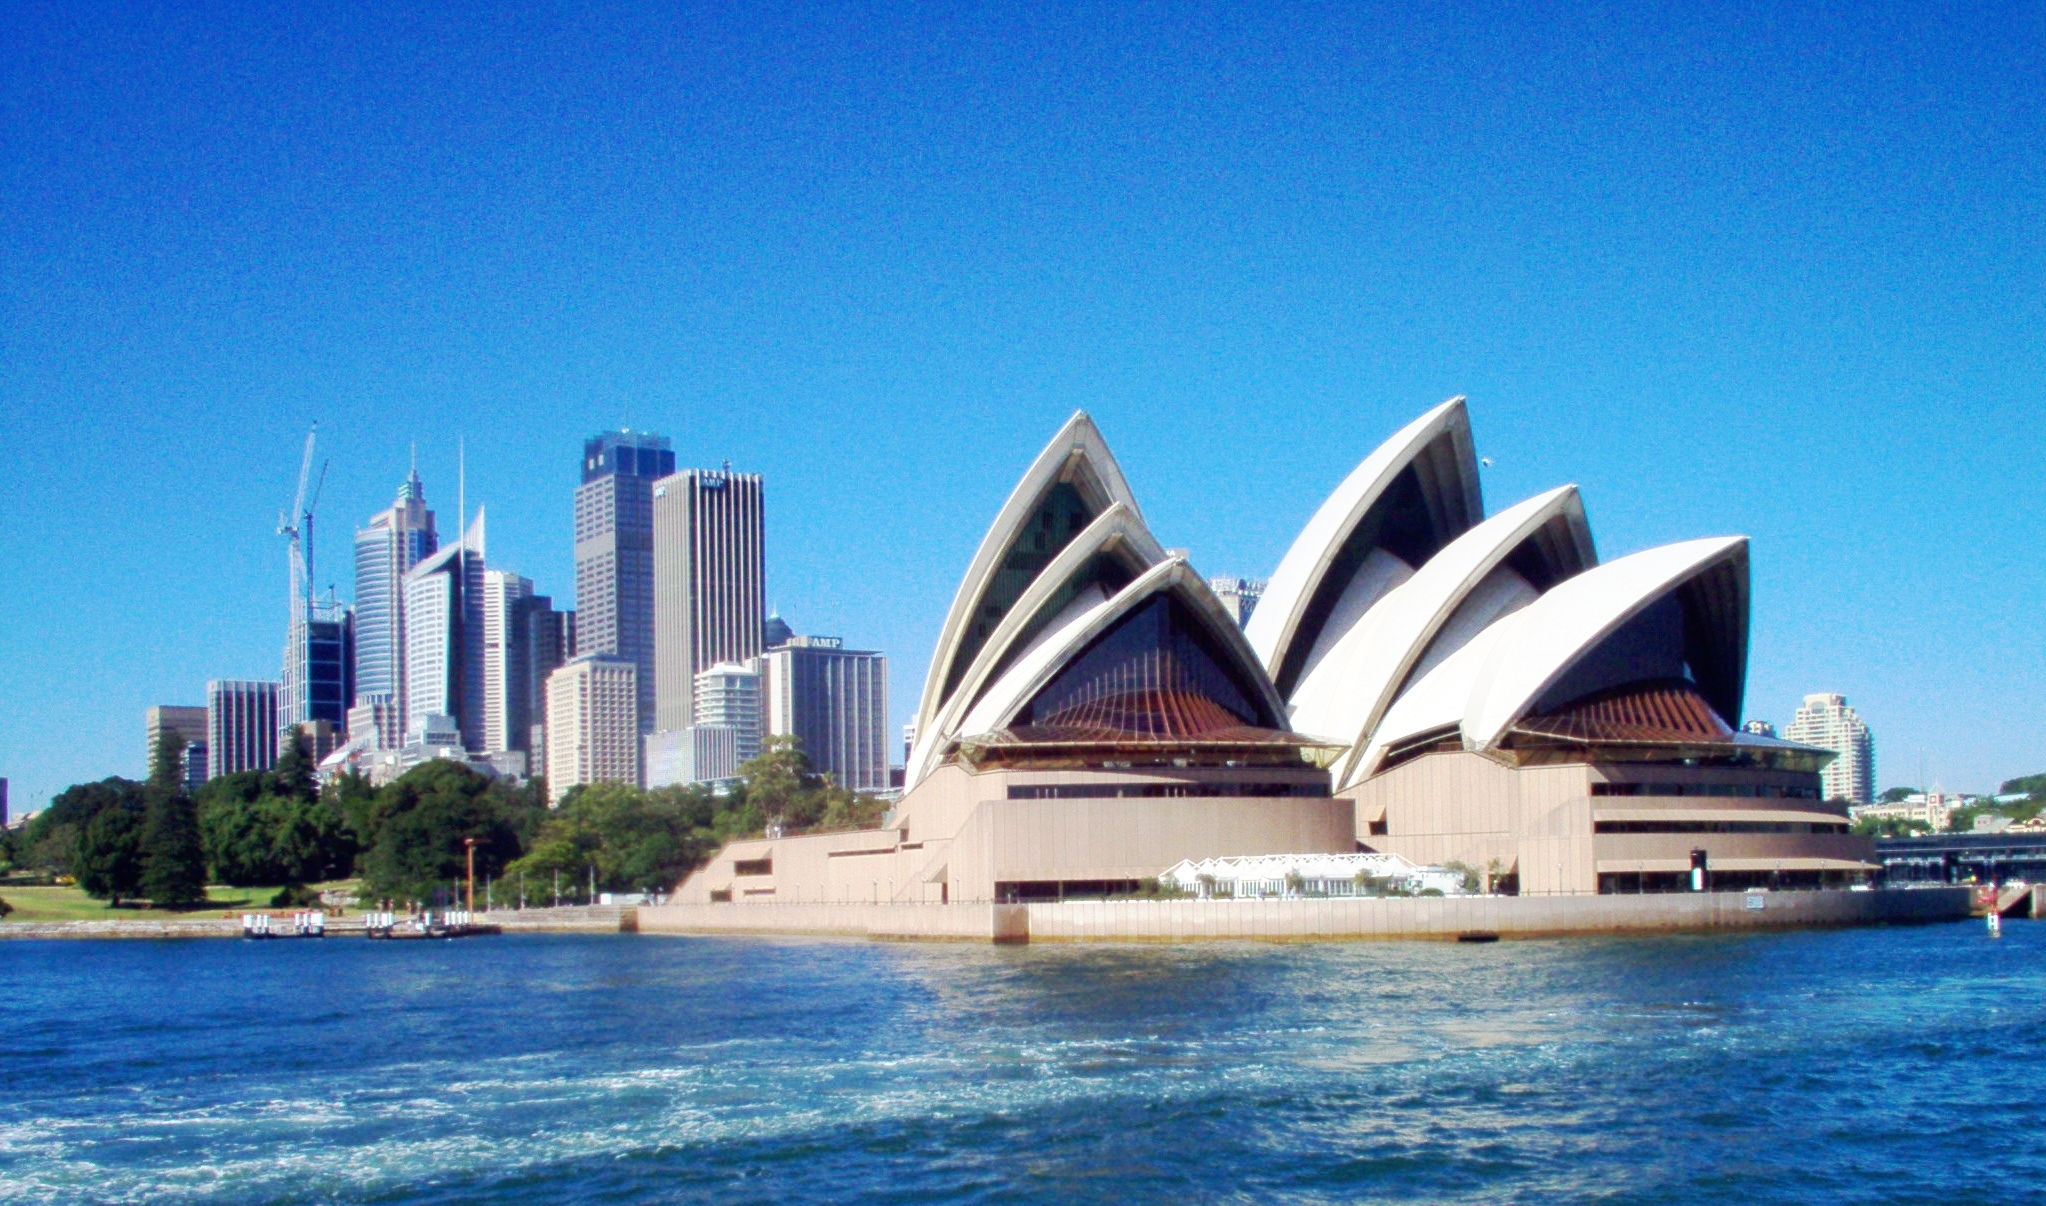 new wallpapers download marvelous sydney opera house hd nice